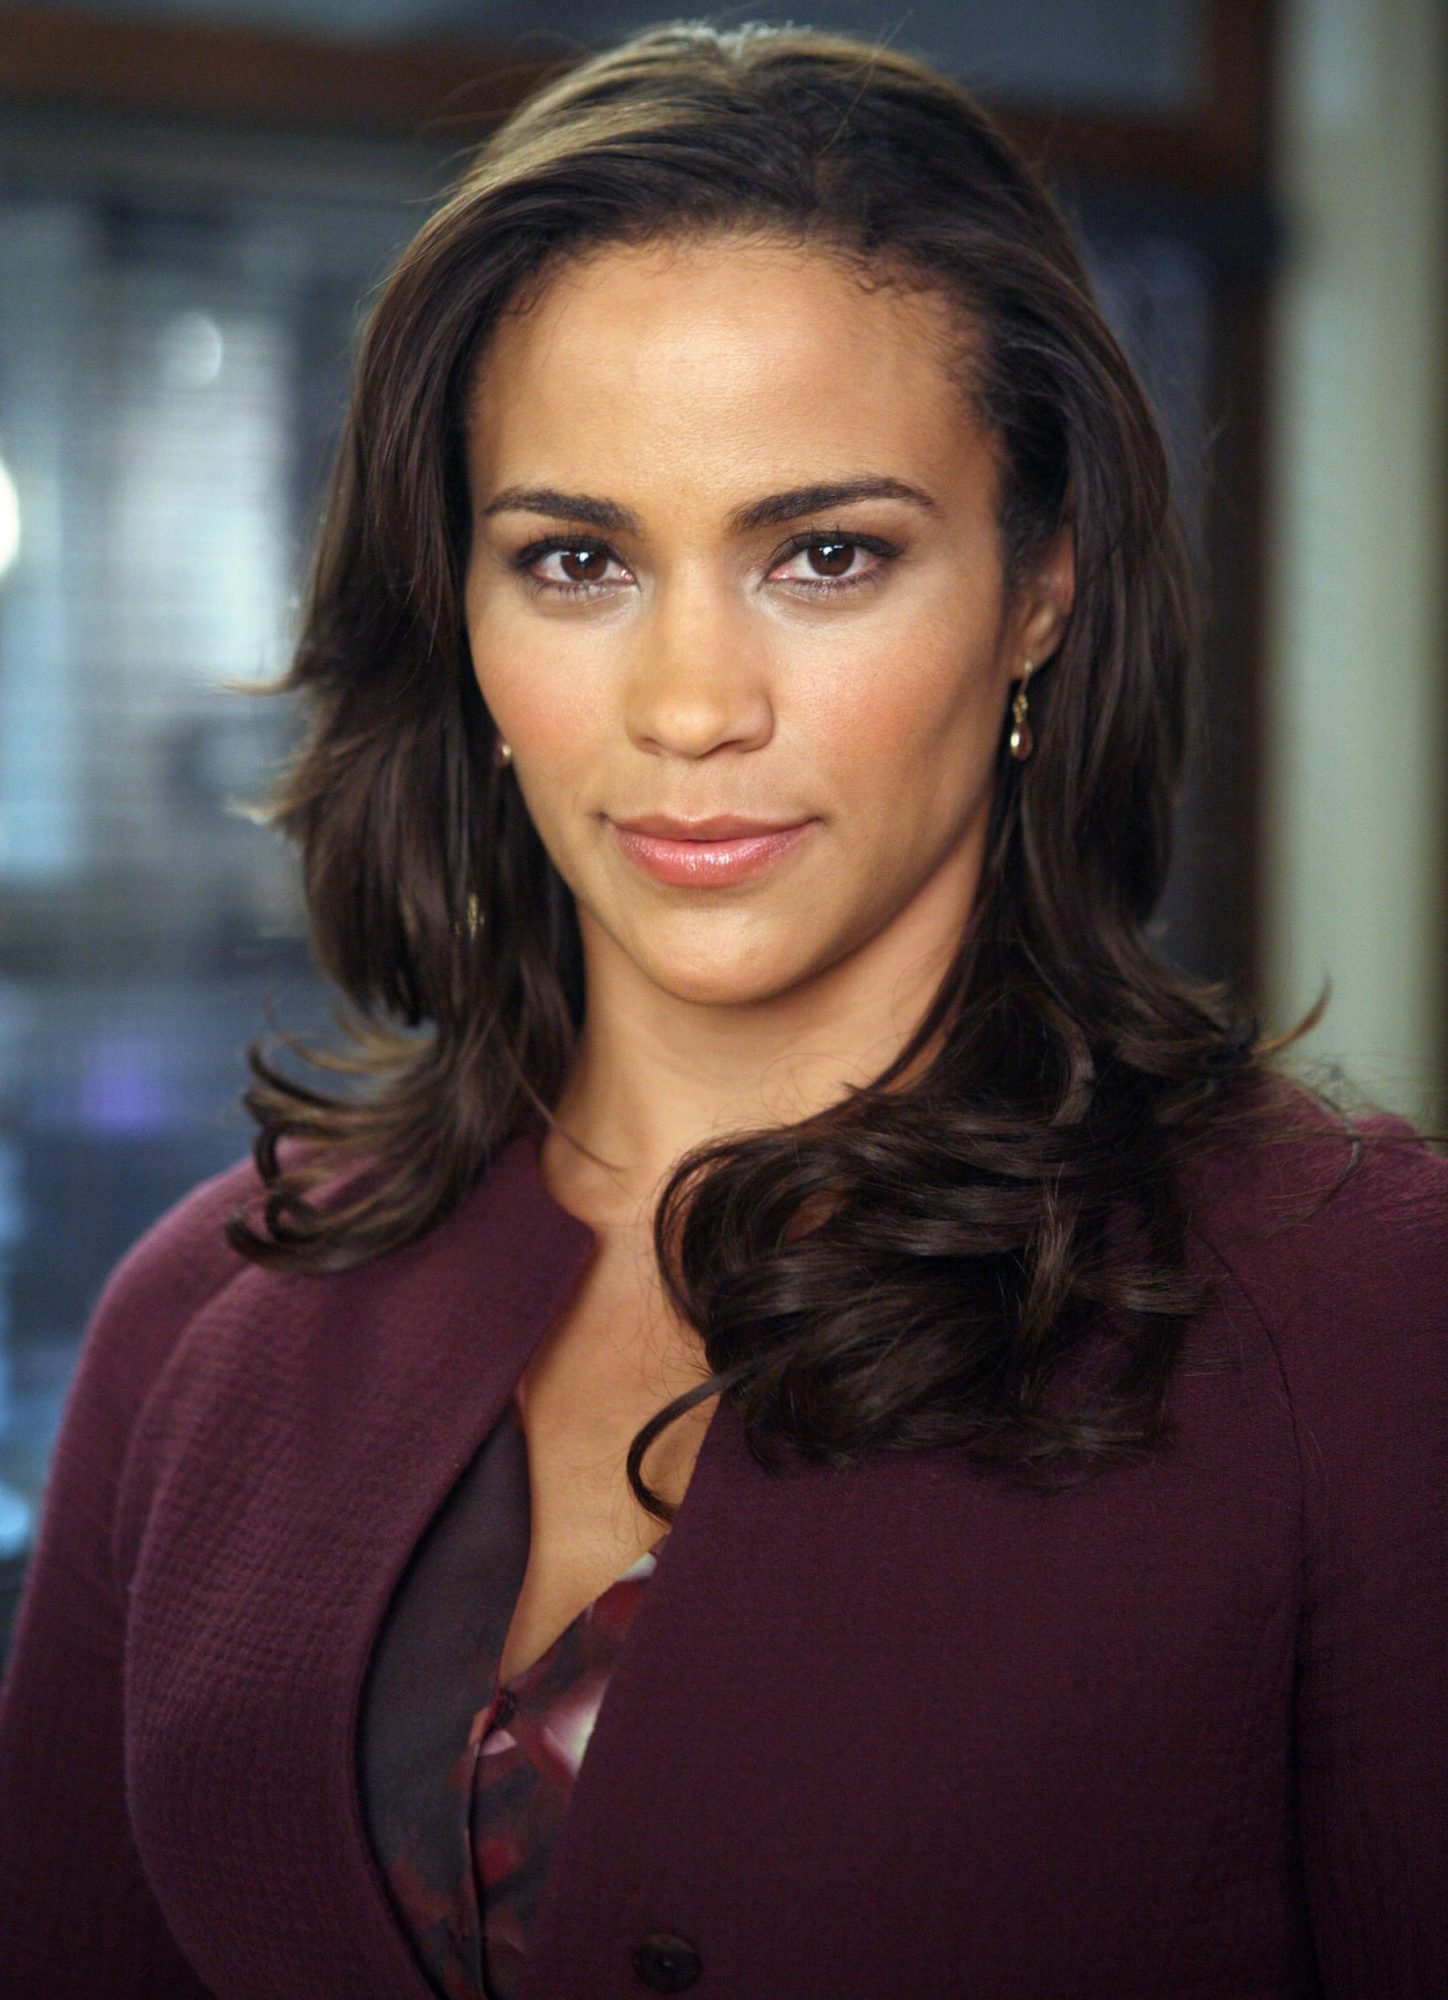 9. Mikka Von (Paula Patton) — Season 12